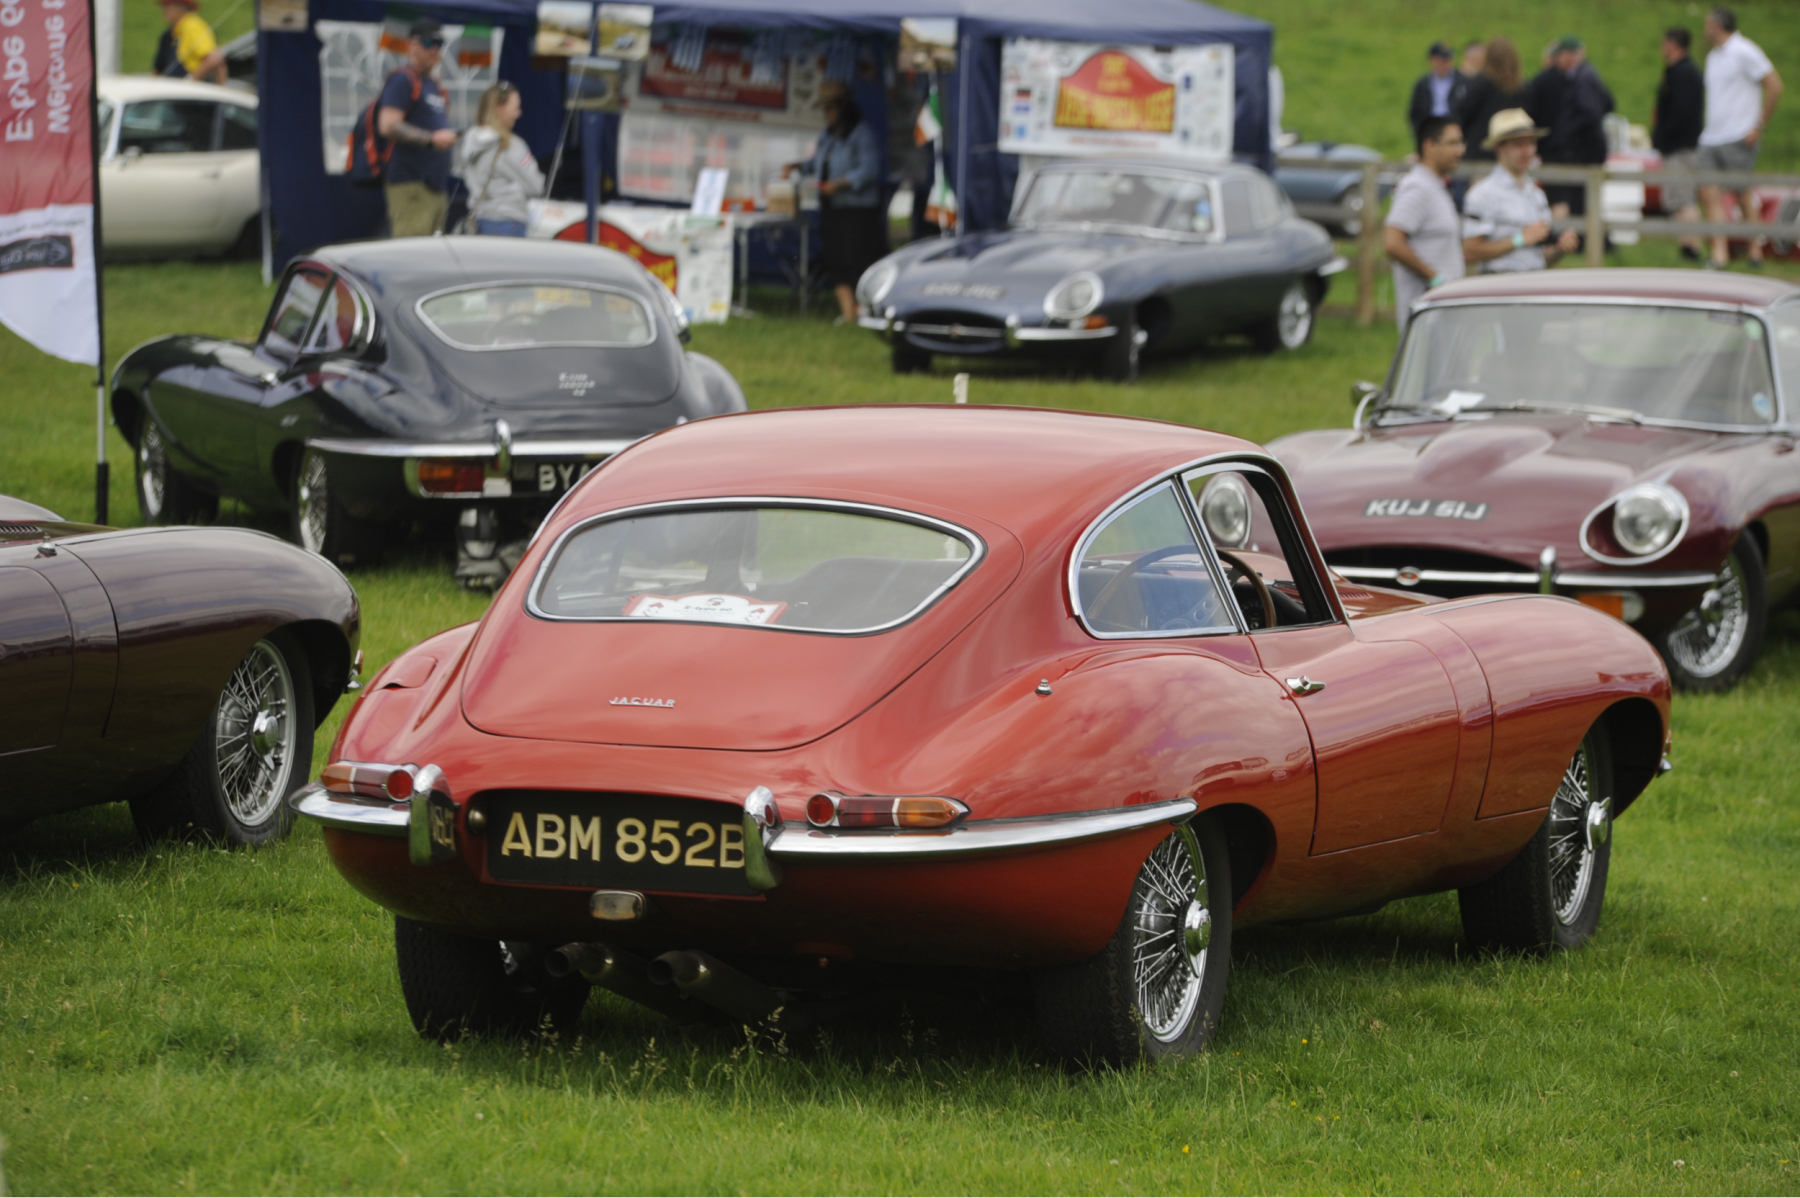 E-type-60-Saturday-photo-by-Abigail-Humphries-264